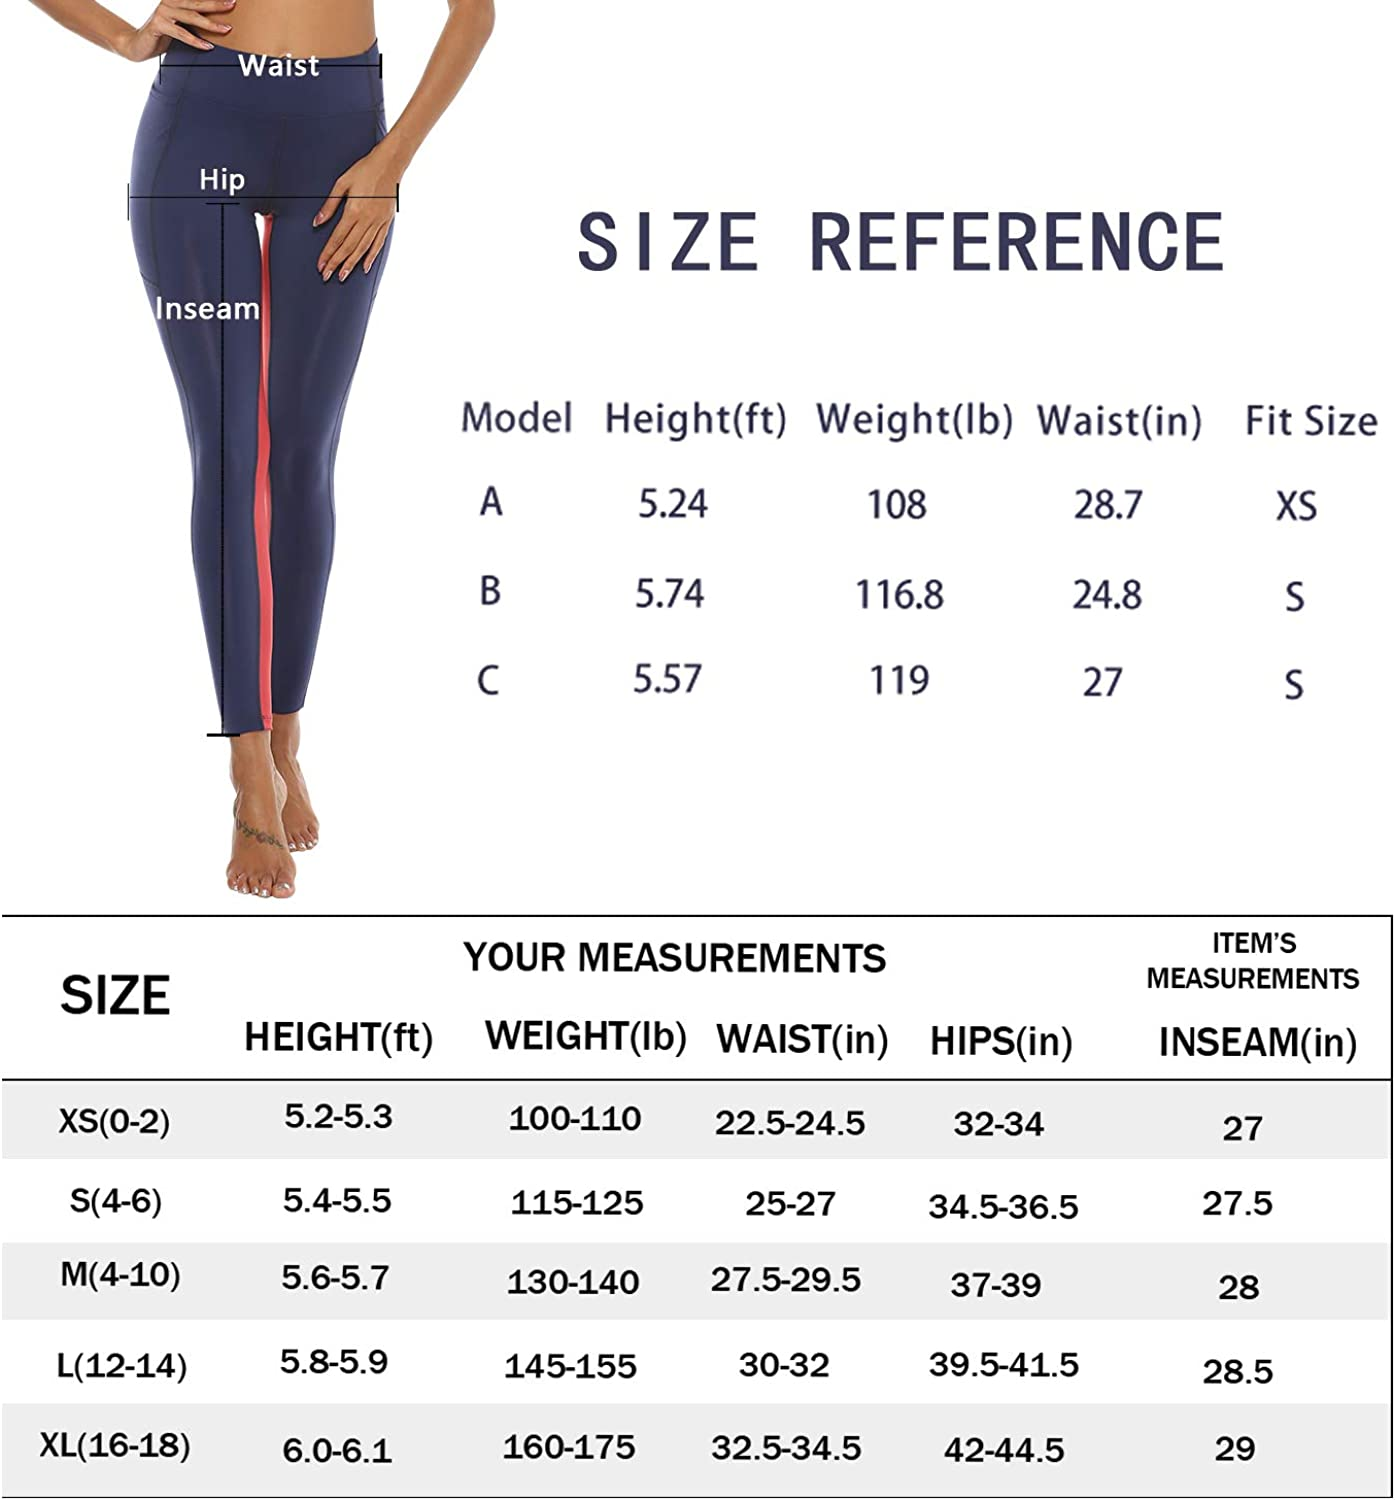 LUWILD Womens High Waist Workout Leggings with Pockets Stretchy Tummy Control Yoga Pants for Gym